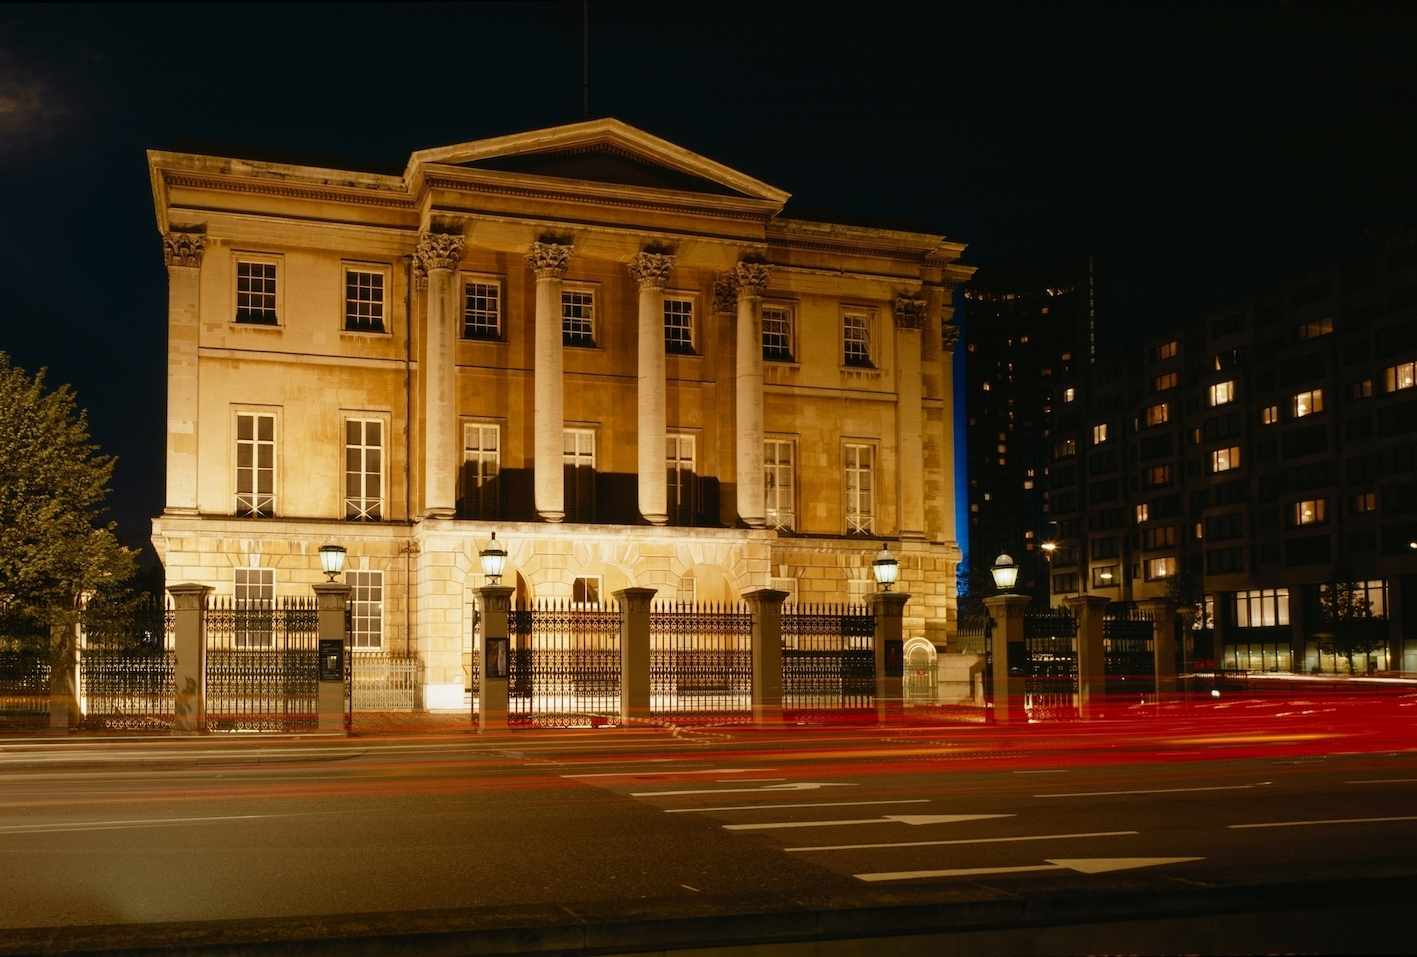 Apsley_House_Exterior__Night_Time_5685